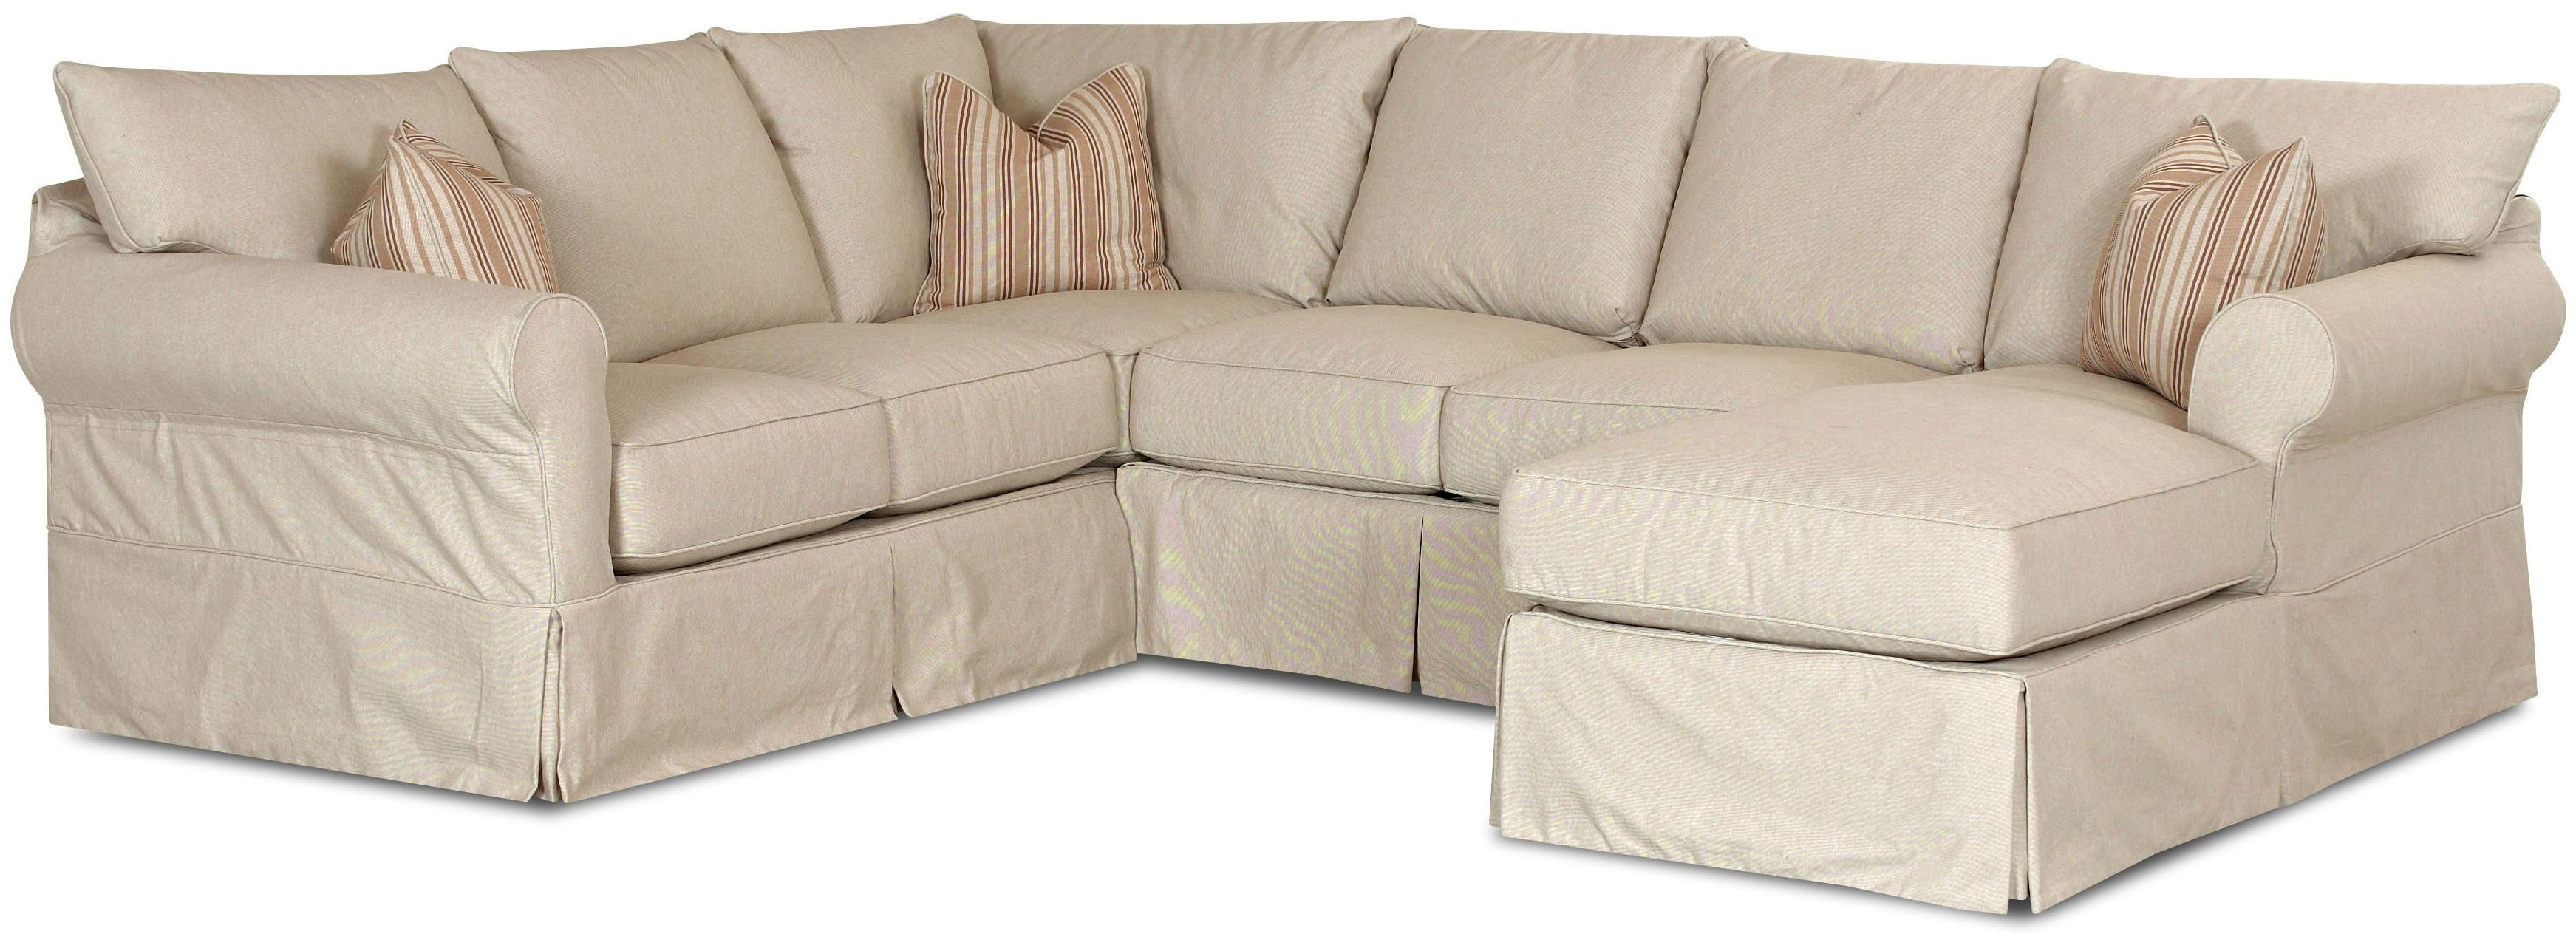 Removable Covers Sectional Sofas Inside Well Liked Sofa Design: Cover Sectional Sofa High Quality Sofa Covers (View 14 of 20)